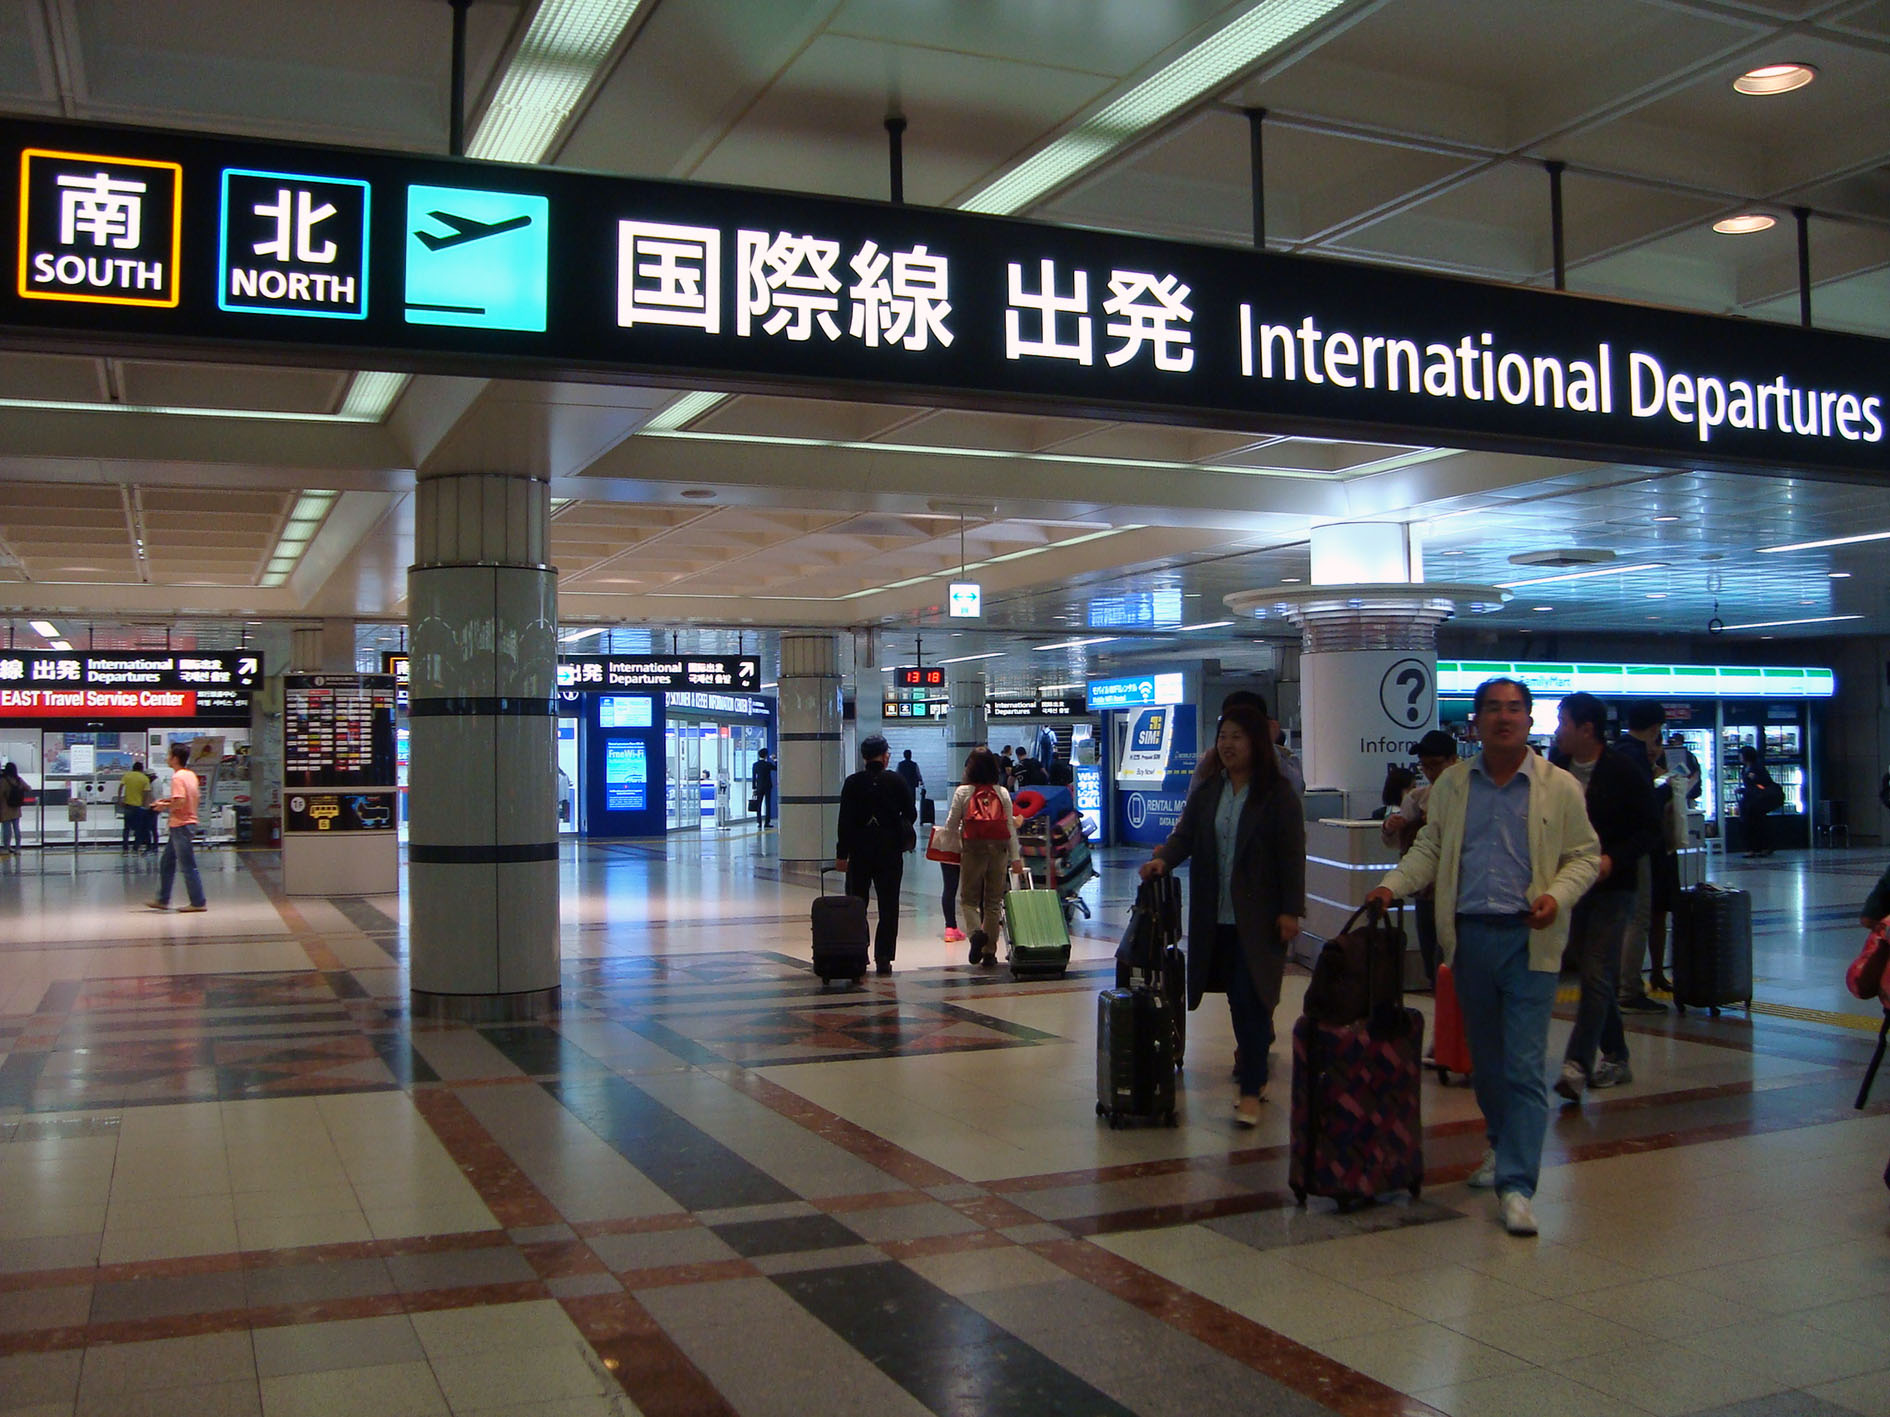 "North wing and south wing are indicated by pictograms instead of letters to save the space and display the large letter ""International Departures""."